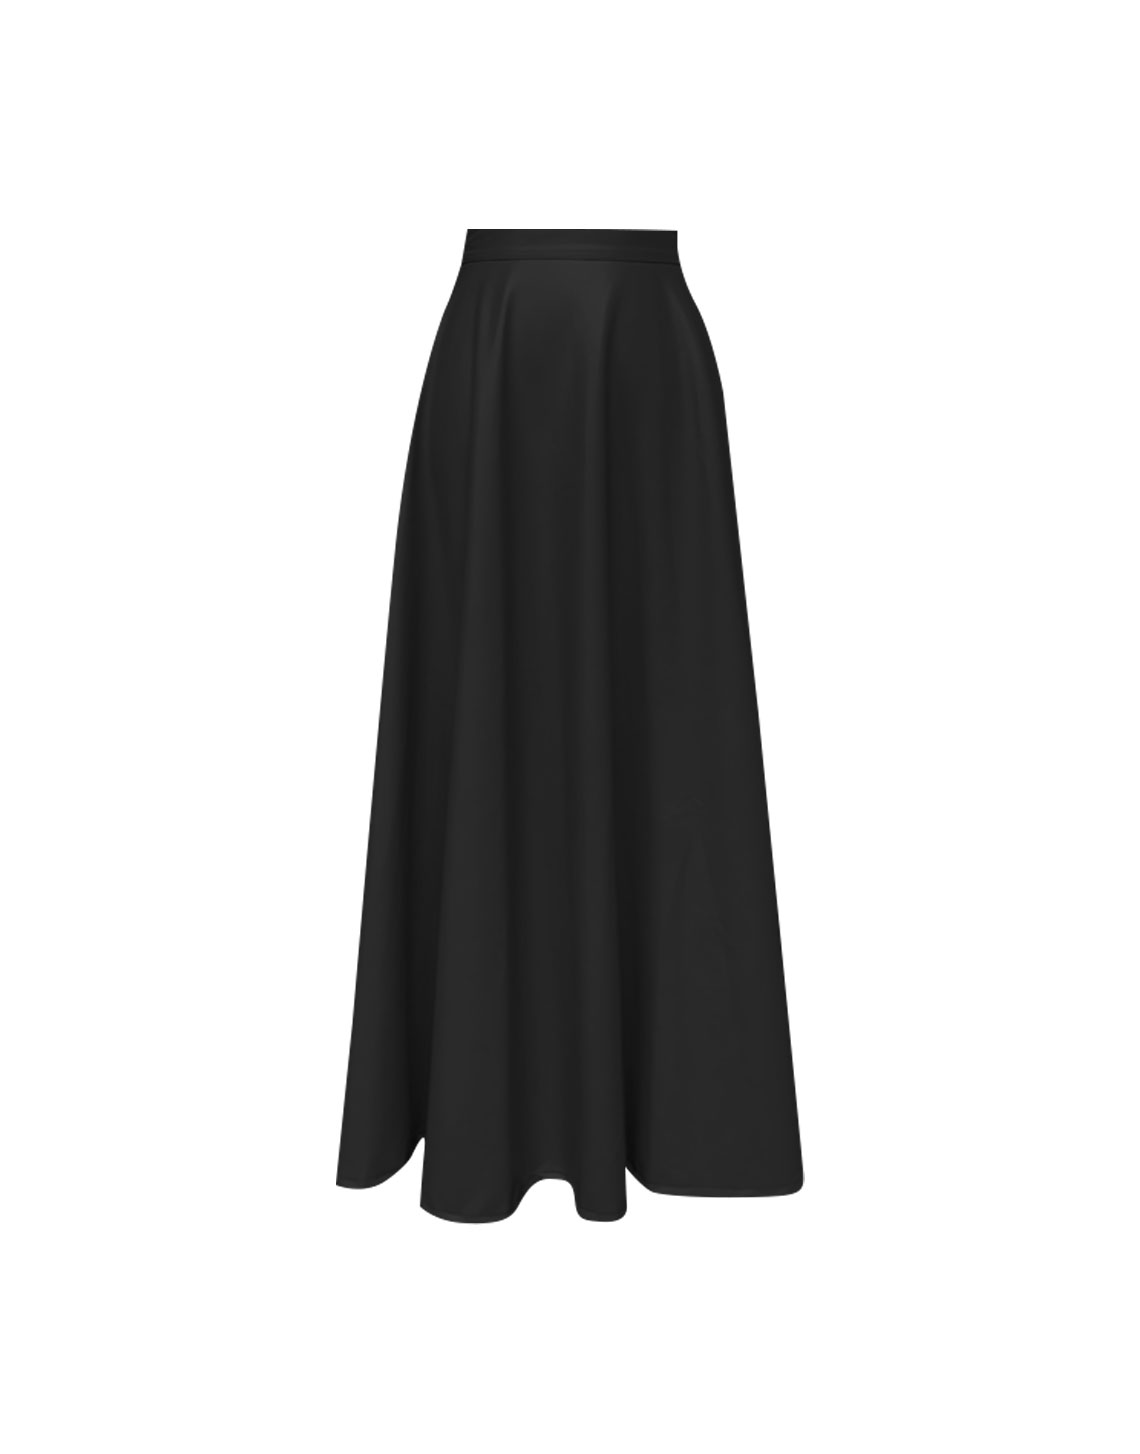 New Hibiscus Skirt - Black by Jessica K on curated-crowd.com